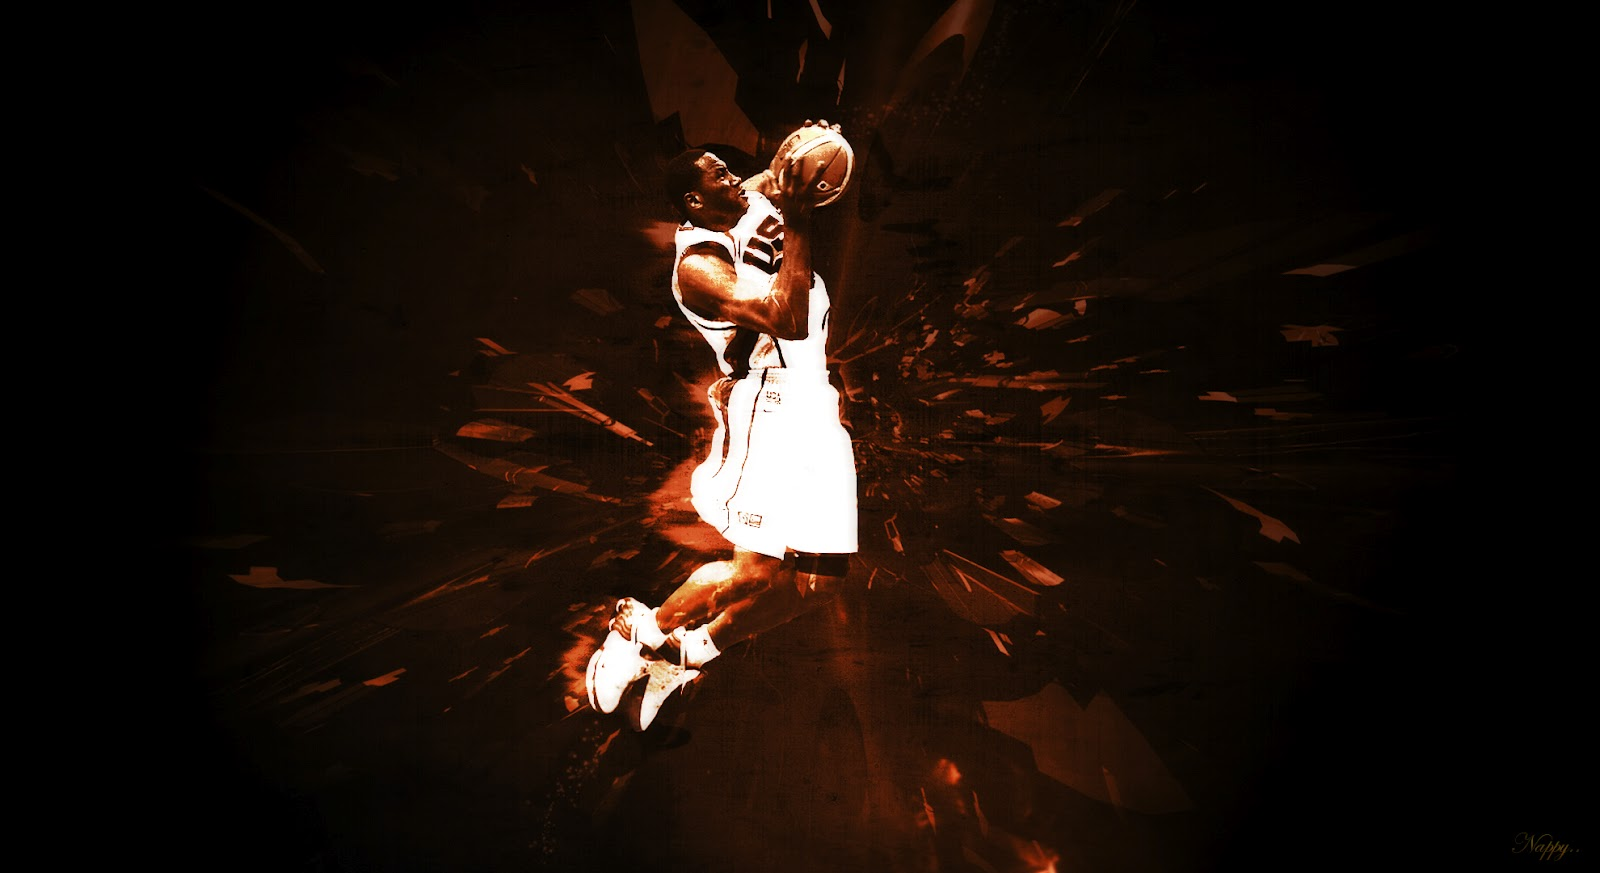 Cool Nba Wallpapers For Iphone 65 Images: Basketball Wallpapers IPhone